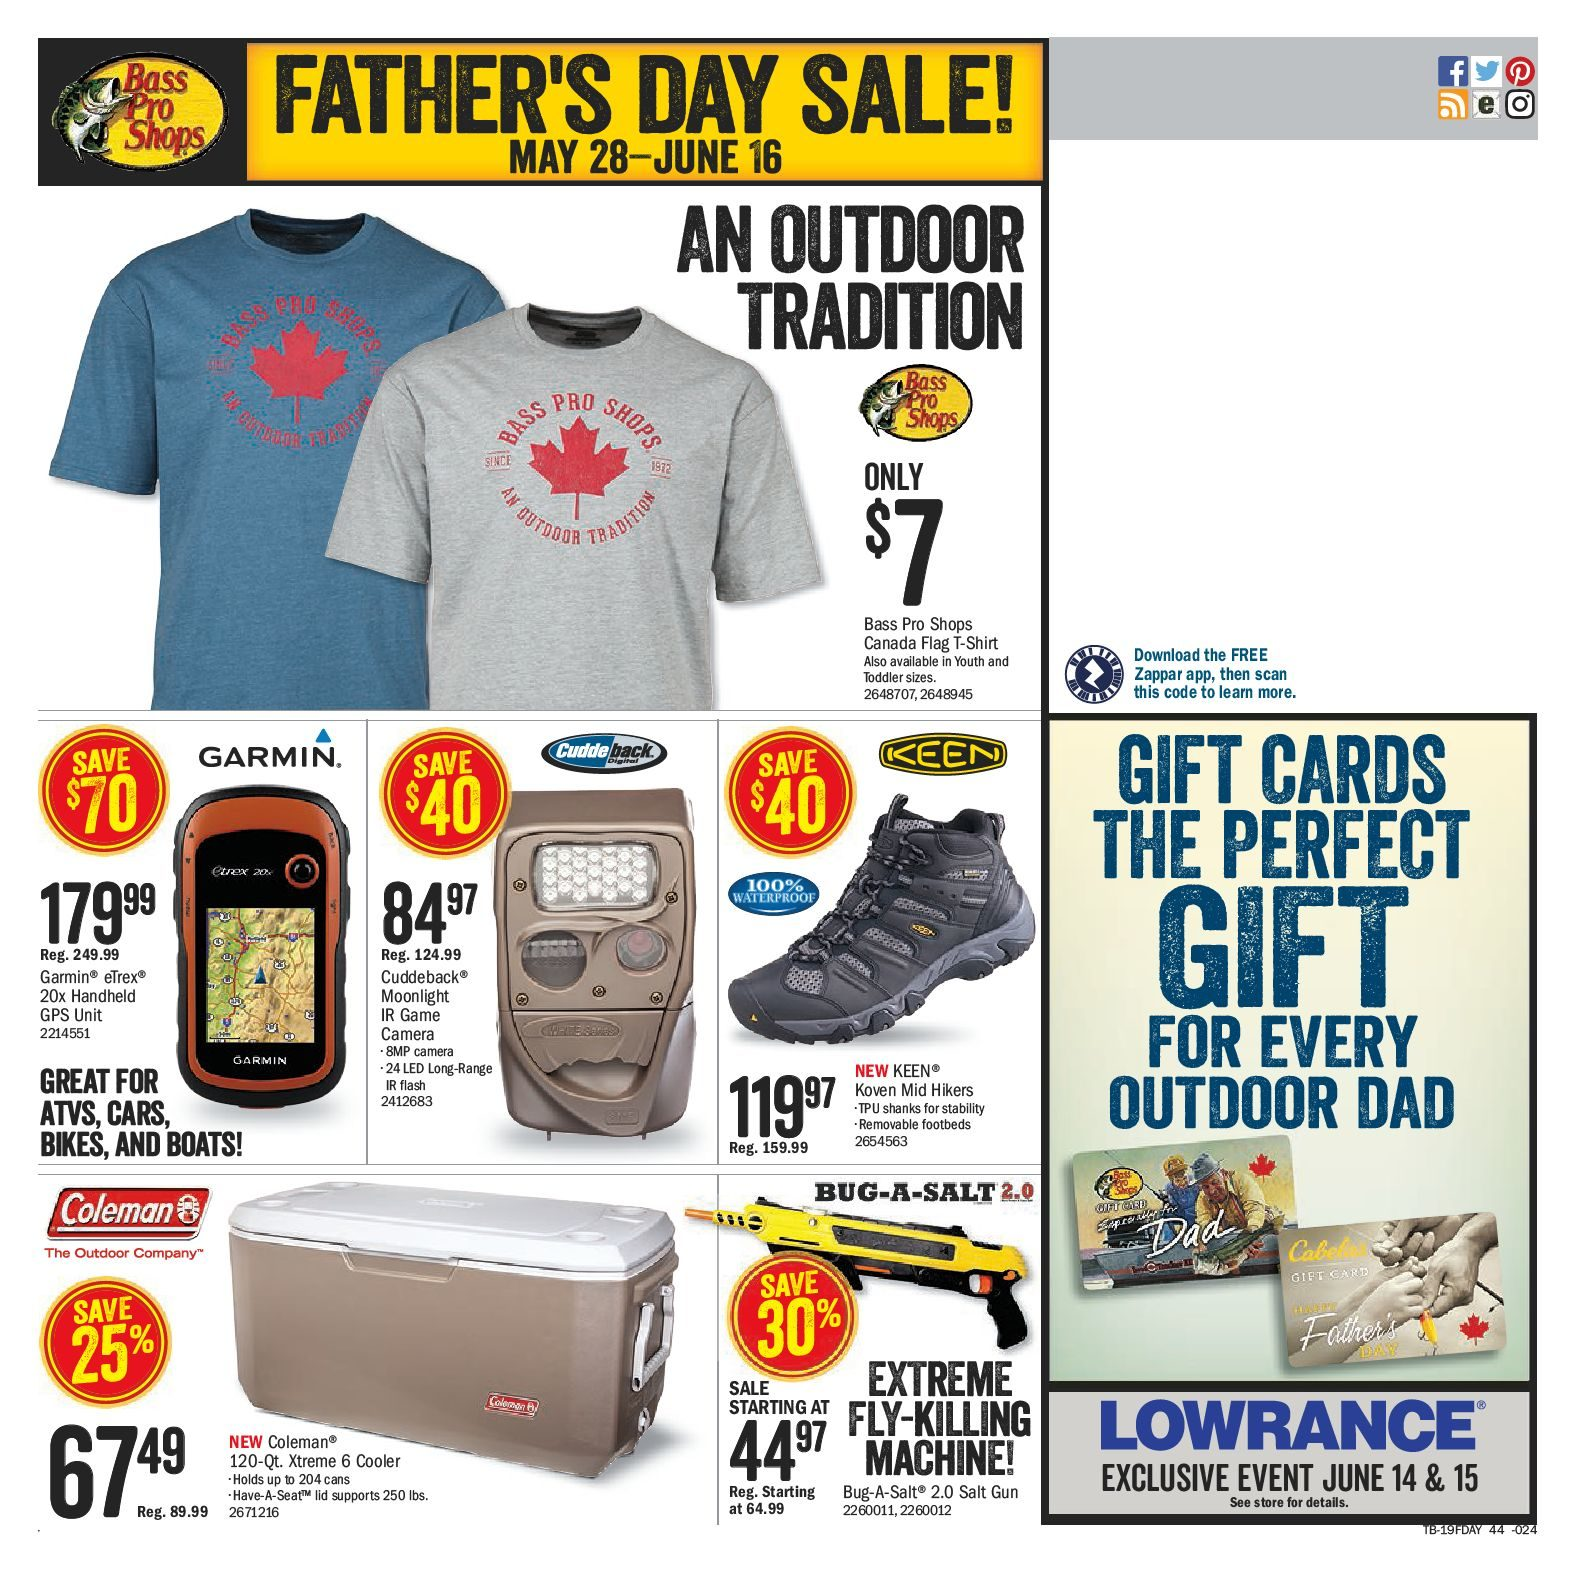 63a8269c237 Bass Pro Shops Weekly Flyer - Father's Day Sale! - May 28 – Jun 16 -  RedFlagDeals.com